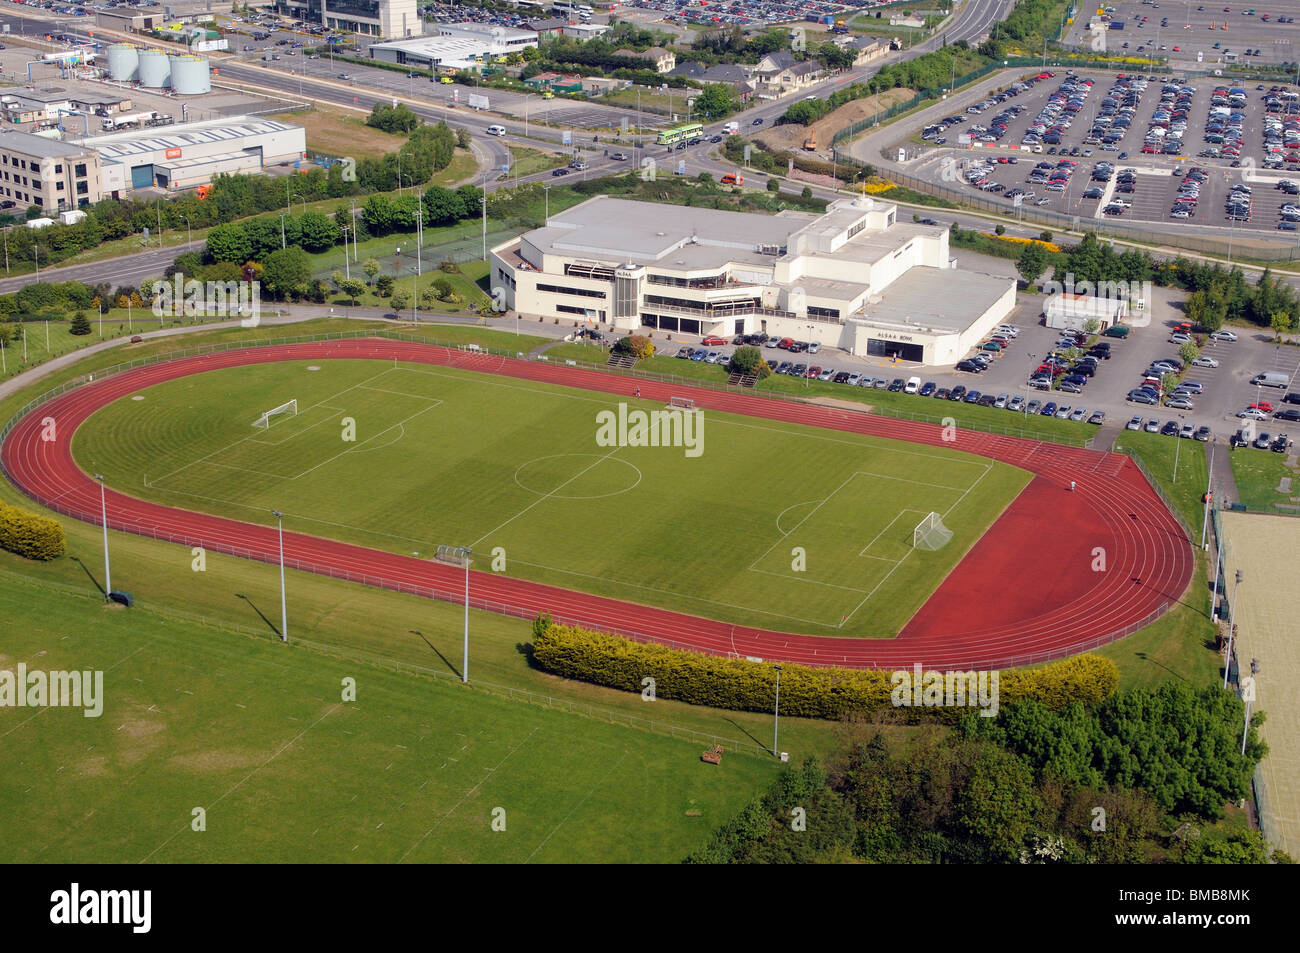 ALSAA Sport Fitness & Social Association building with athletics track and football pitch at Dublin Airport - Stock Image